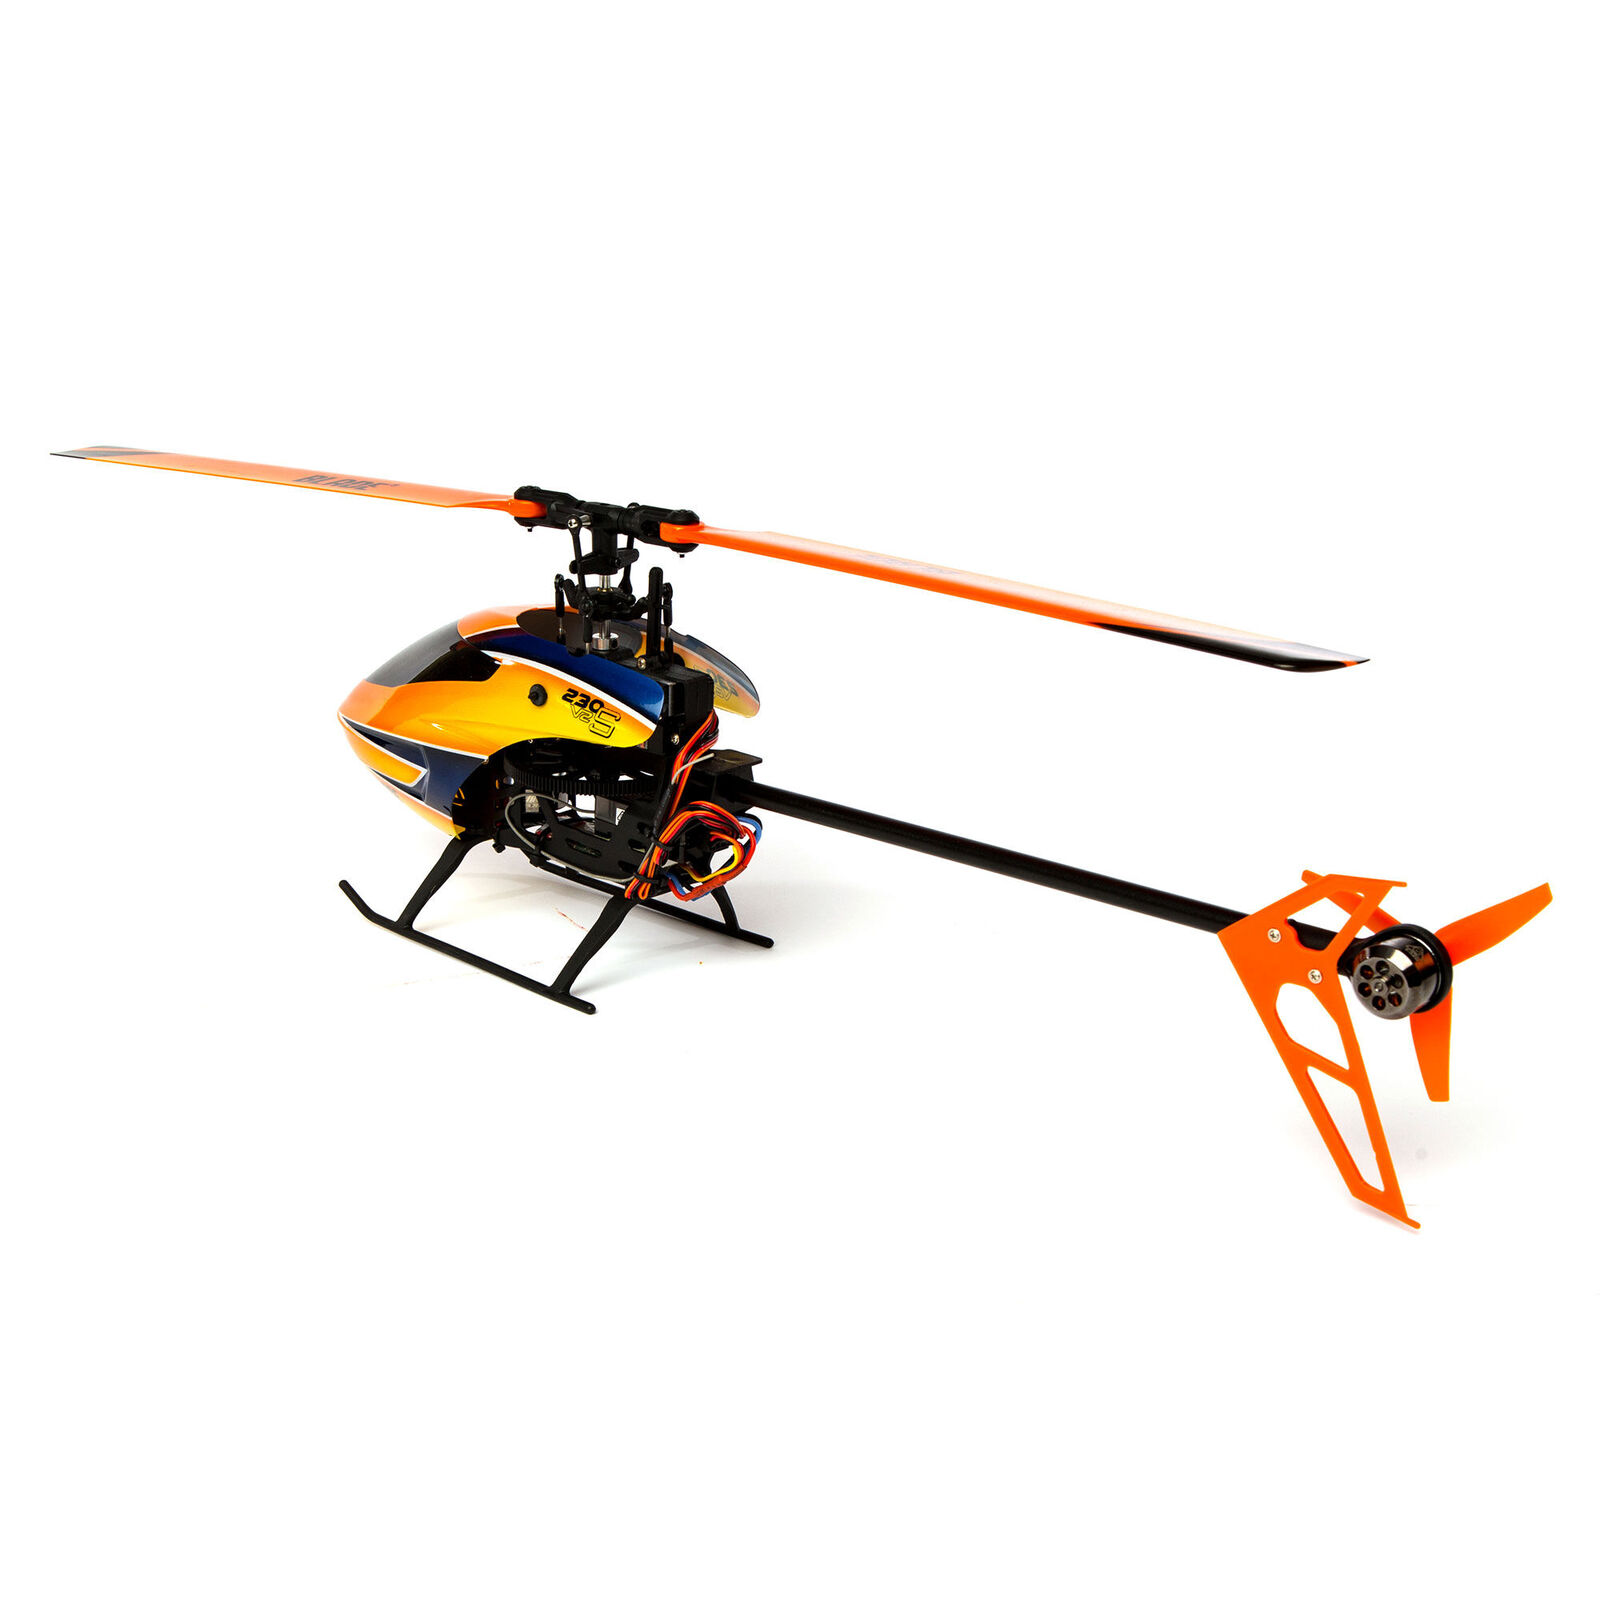 Blade 230 S Smart RTF with SAFE